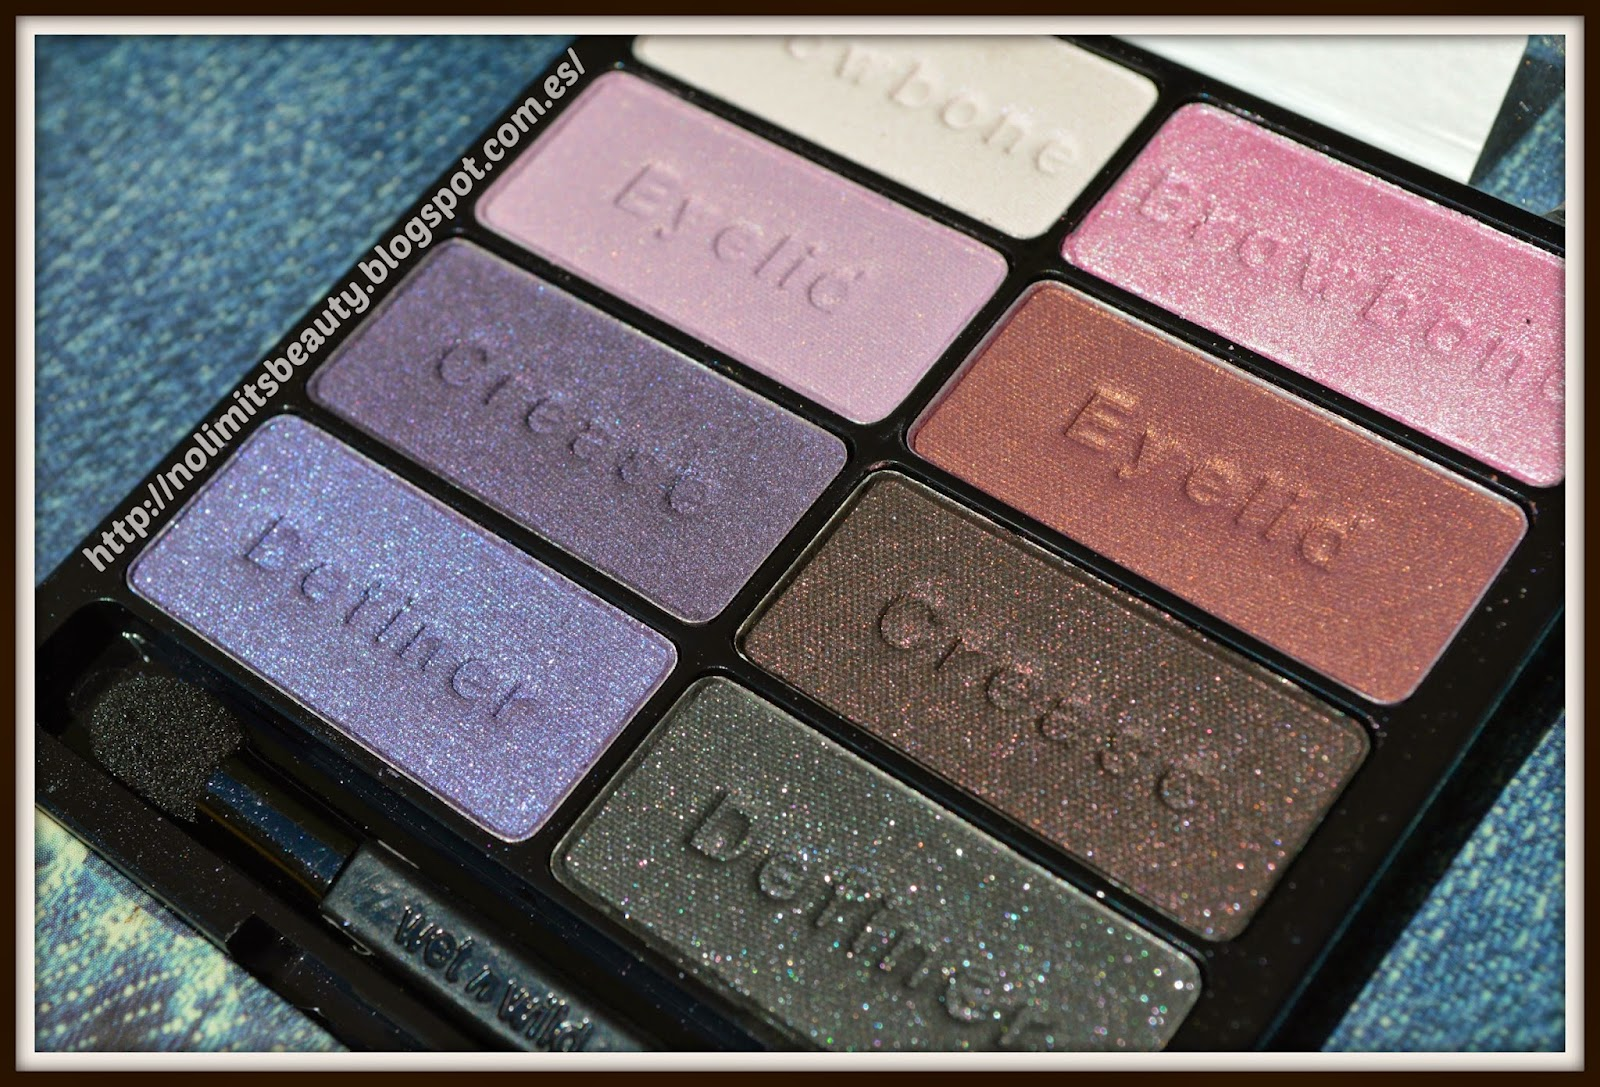 Wet and Wild: Color Icon Eyeshadow Palette en 736 Petal Pusher